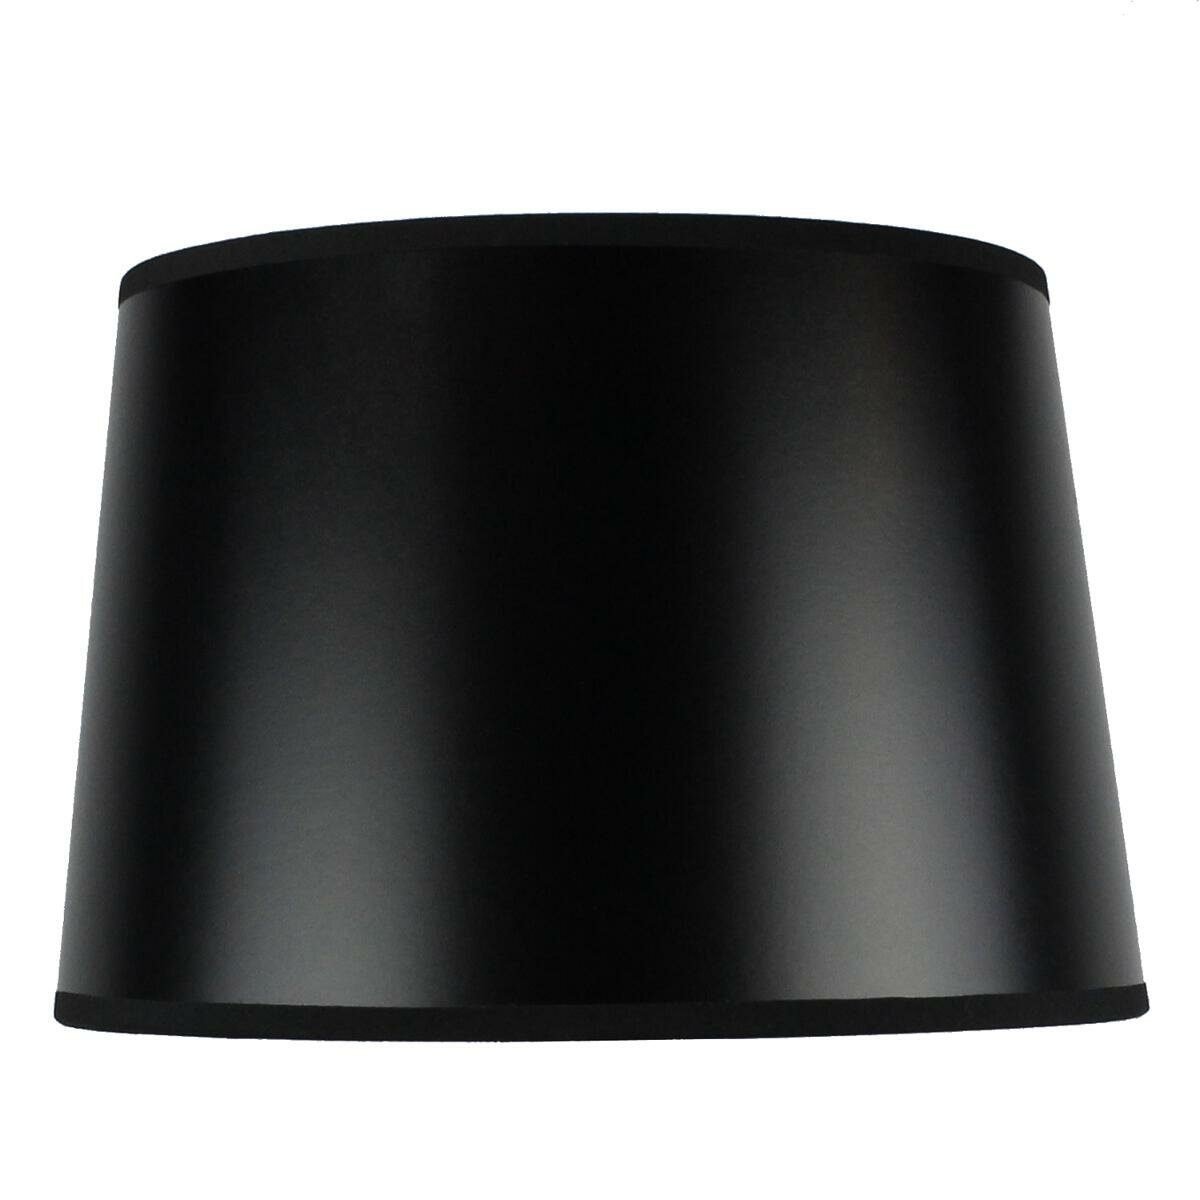 details about home concept inc shallow 12 shantung drum lamp shade. Black Bedroom Furniture Sets. Home Design Ideas